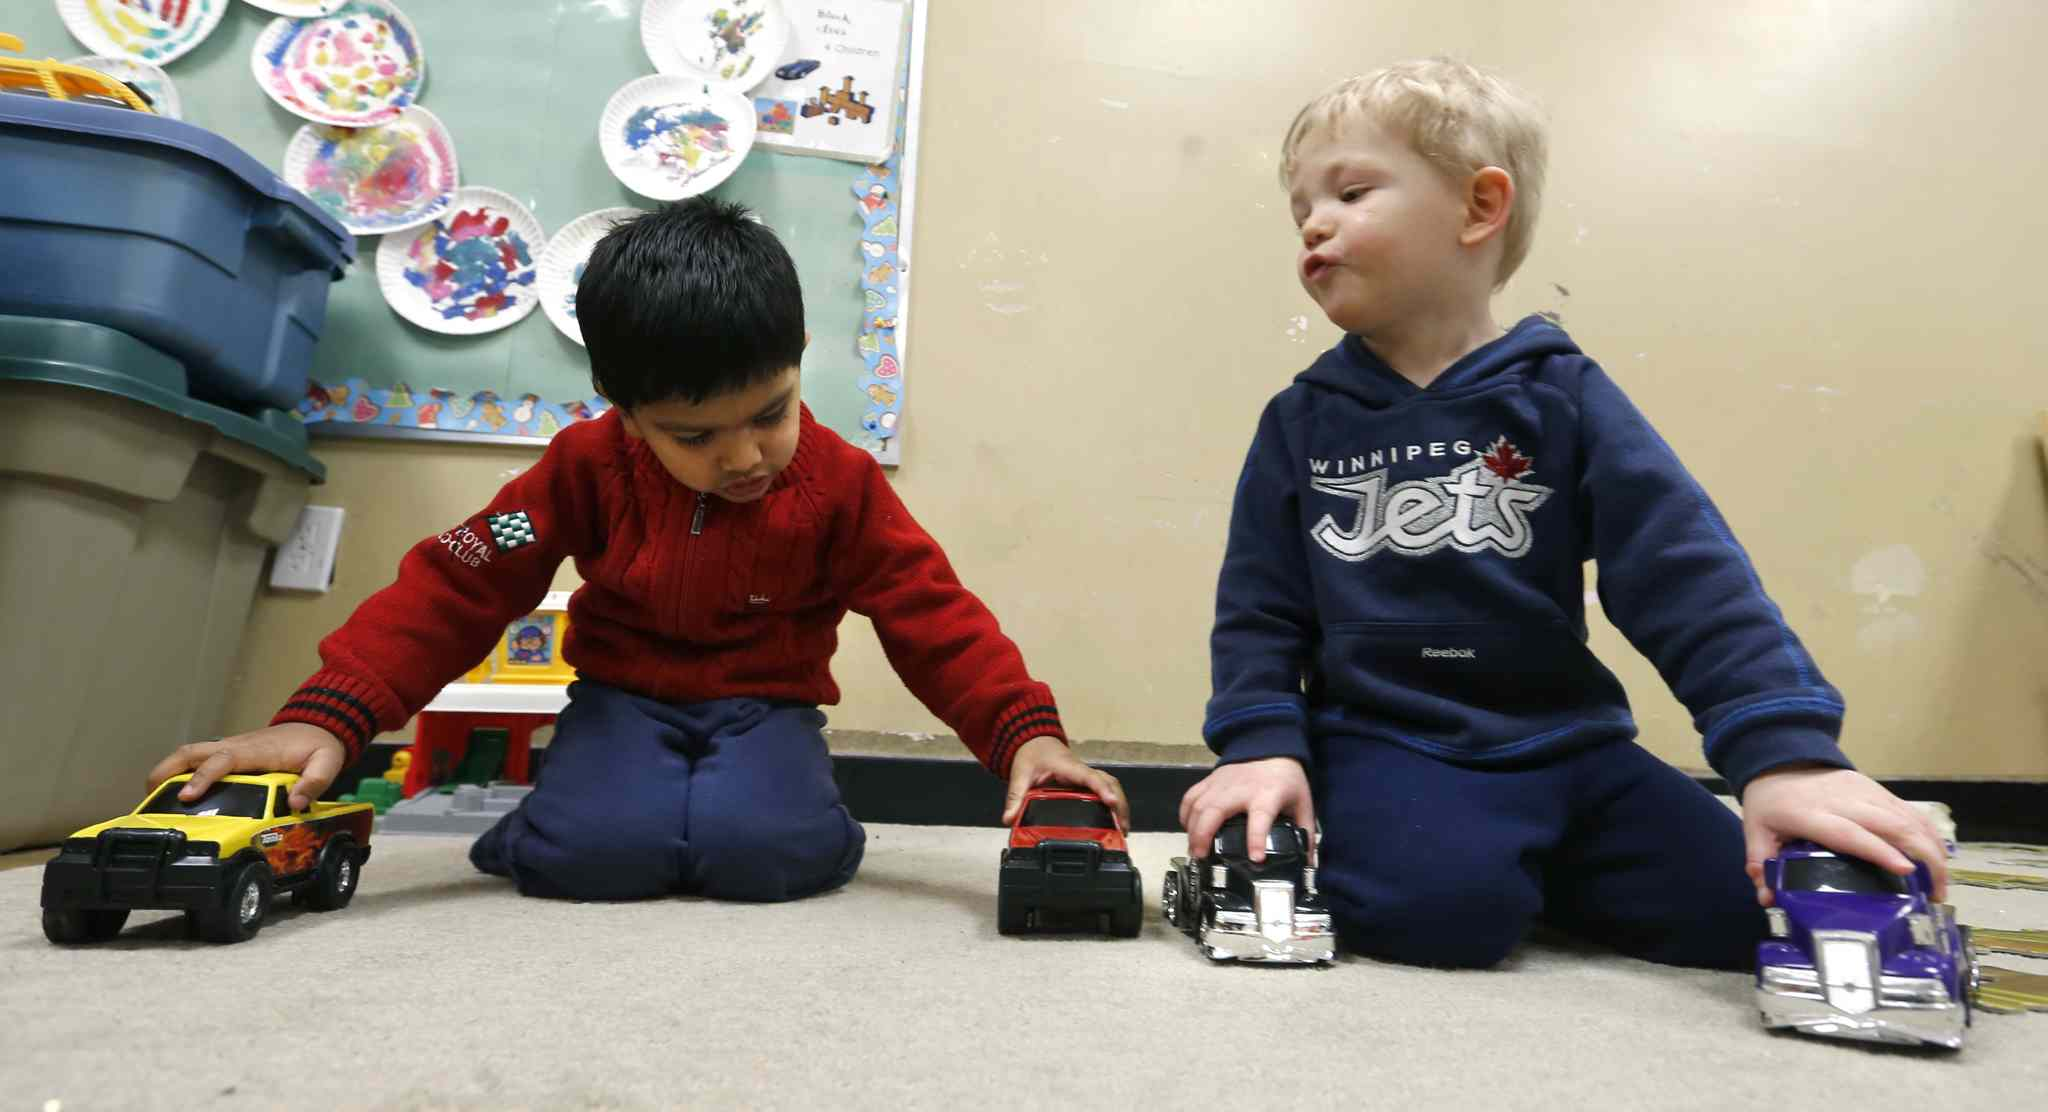 Fateh (left) and Daniel play in a Winnipeg daycare. Moms without a place for their kids frequently struggle to work.